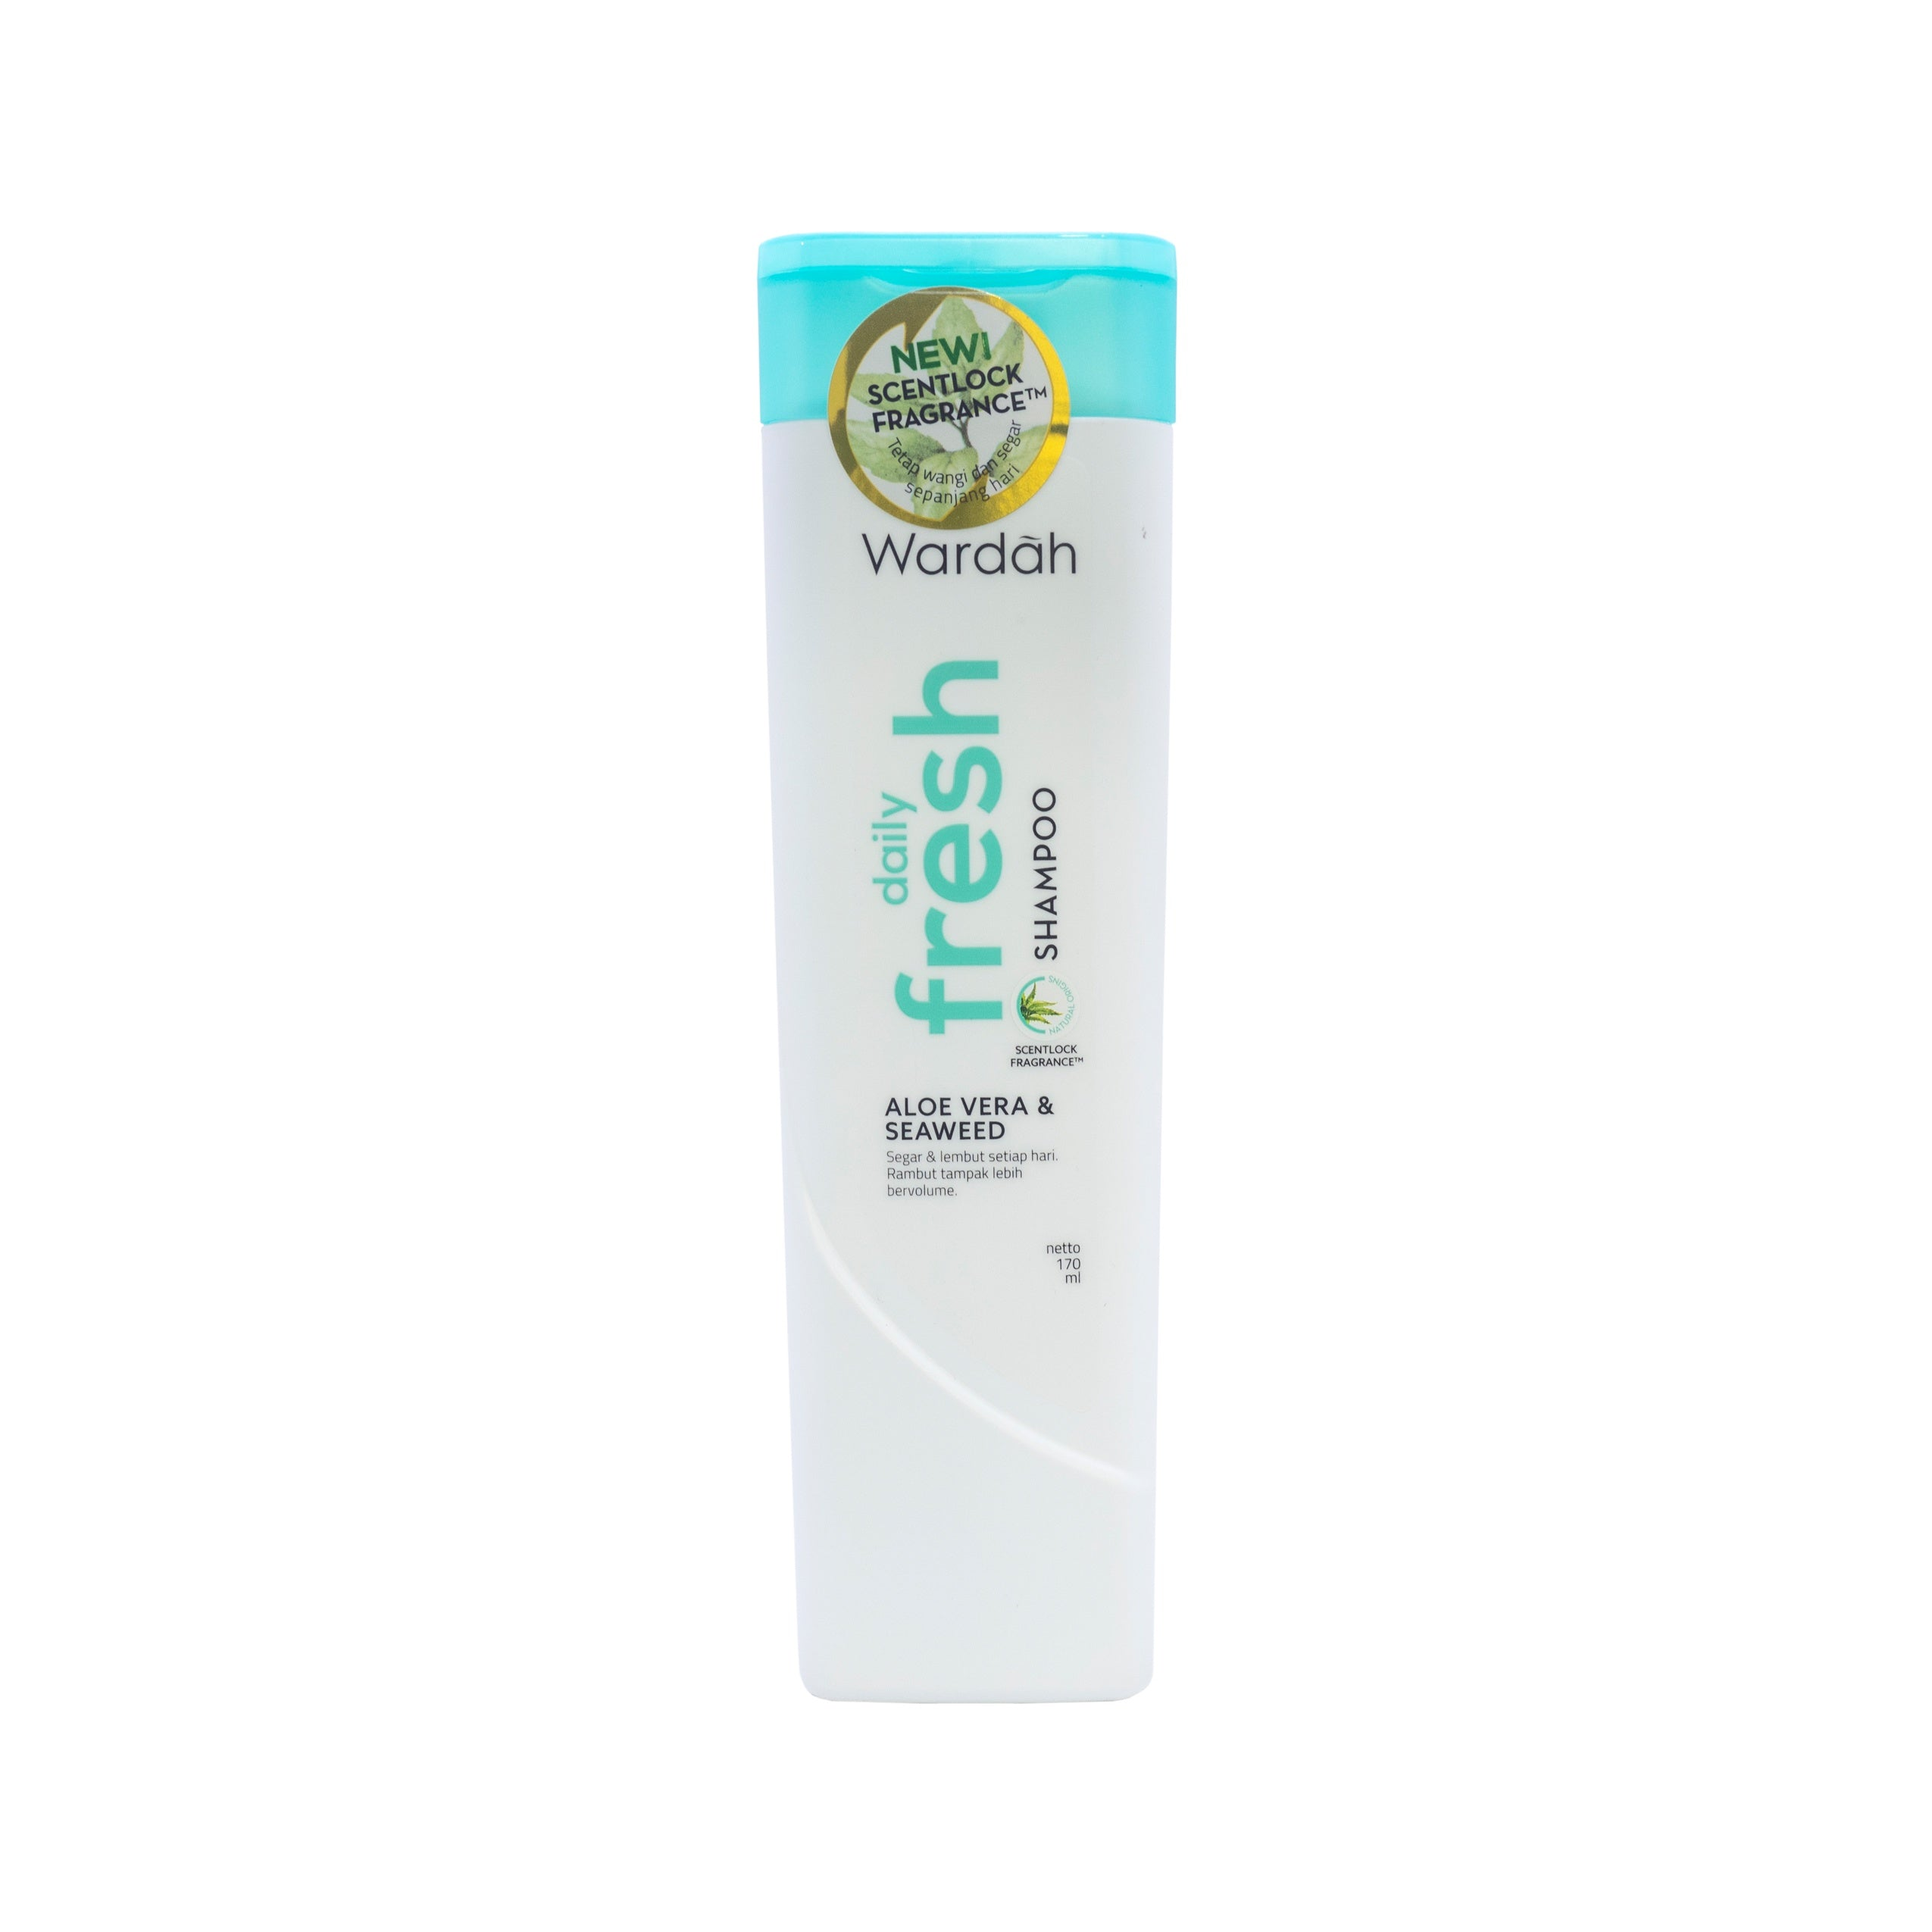 Wardah, Shampoo Daily Fresh, 170 ml